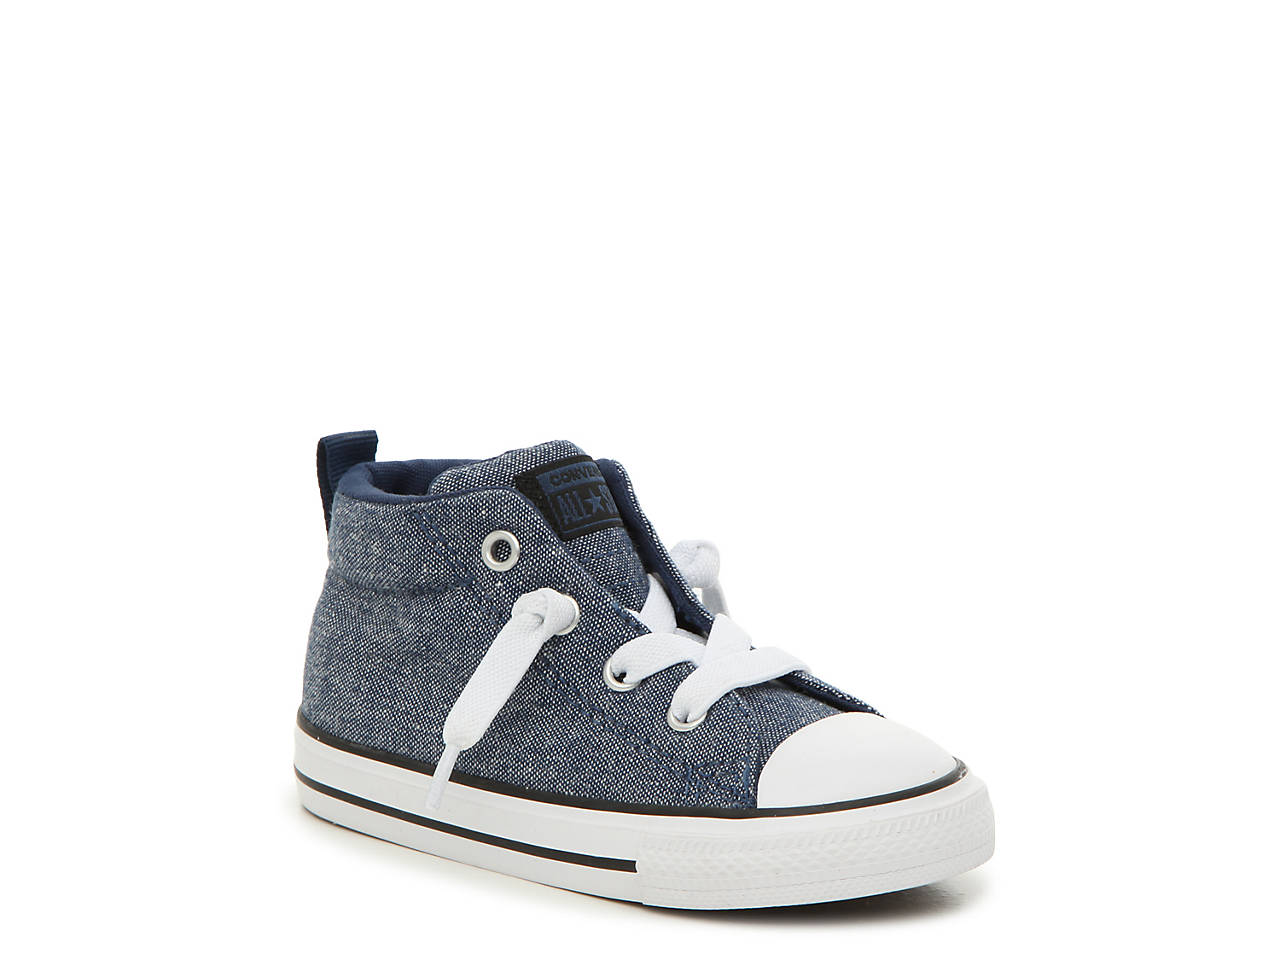 9017c0ad85b8 Converse Chuck Taylor All Star Street Toddler Slip-On Sneaker Kids ...